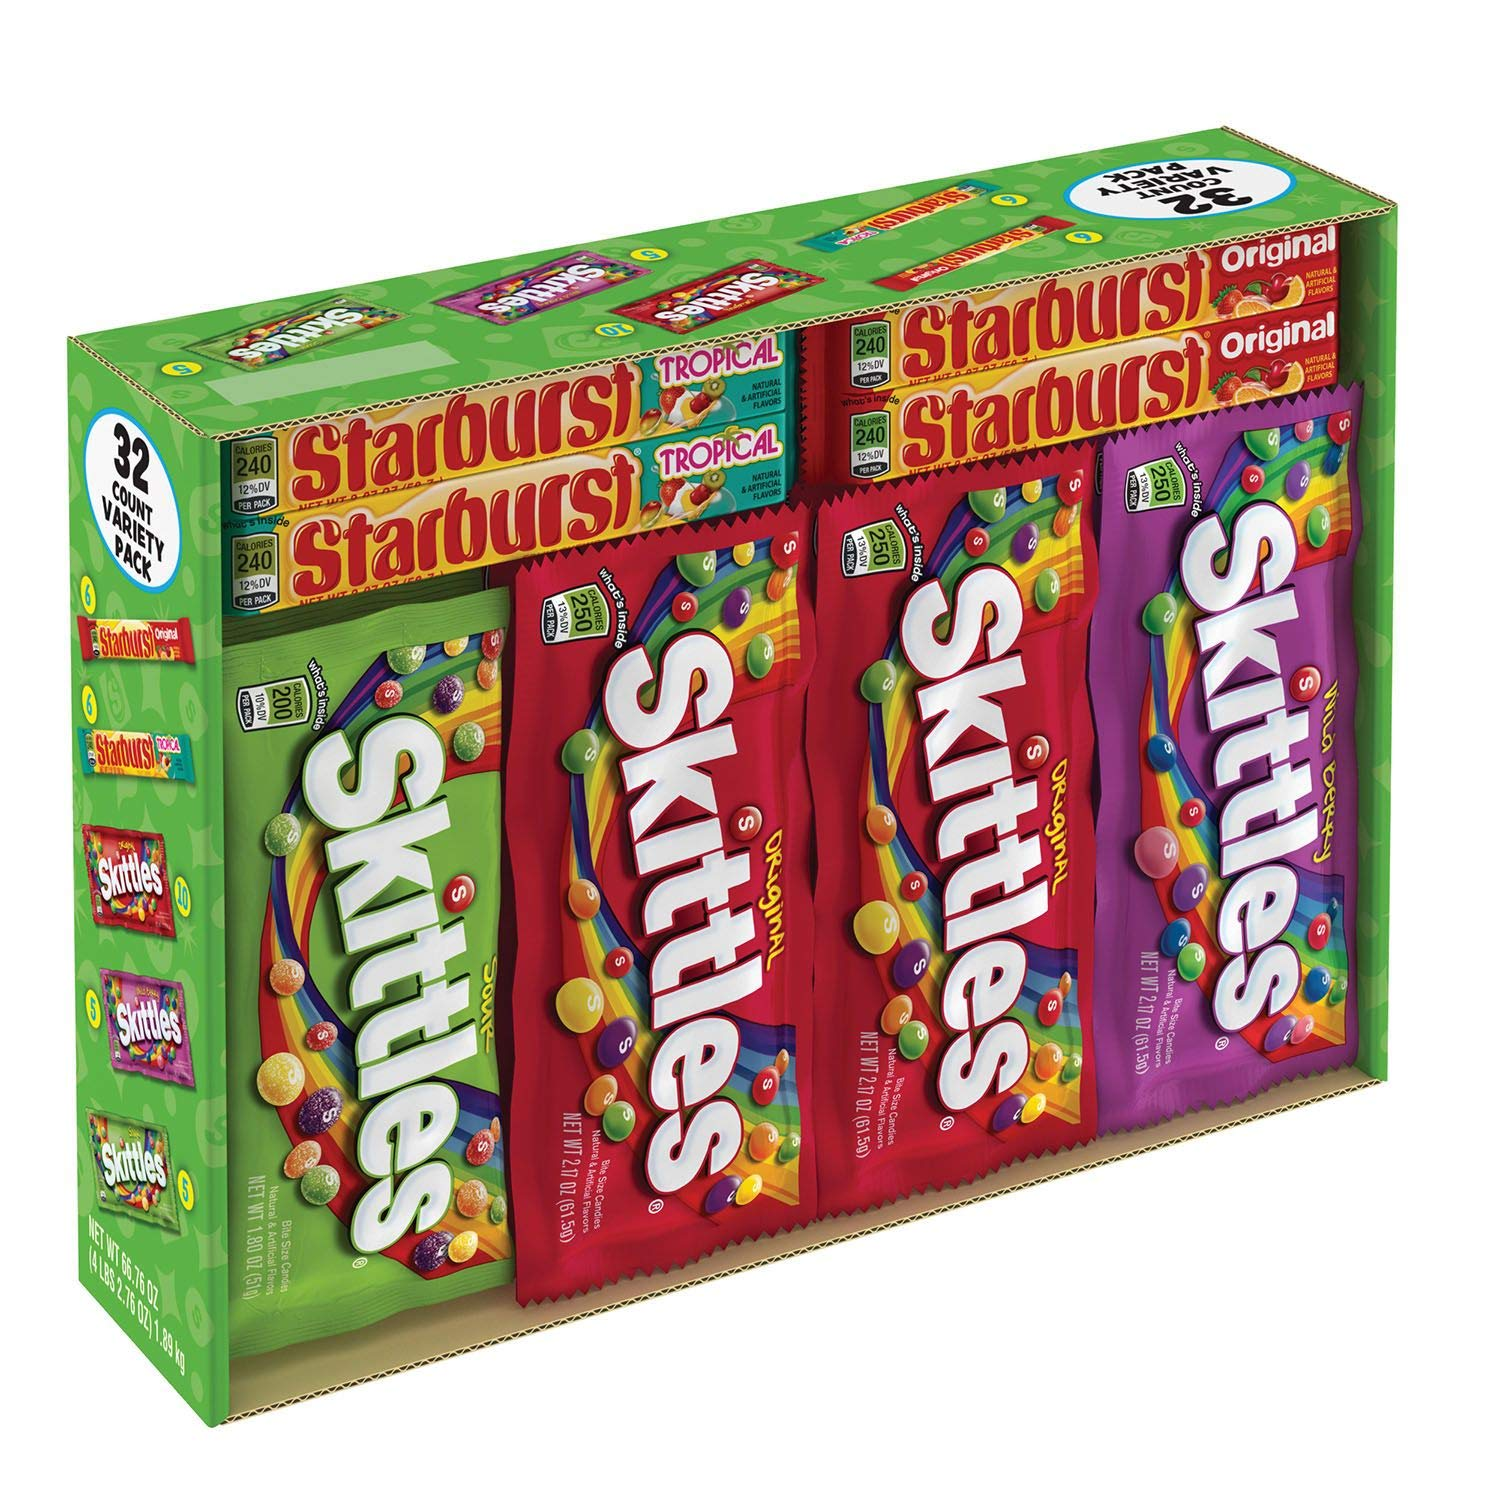 Skittles & Starburst Variety Box 4.17 lbs, 32 ct. A1 by Store - 383